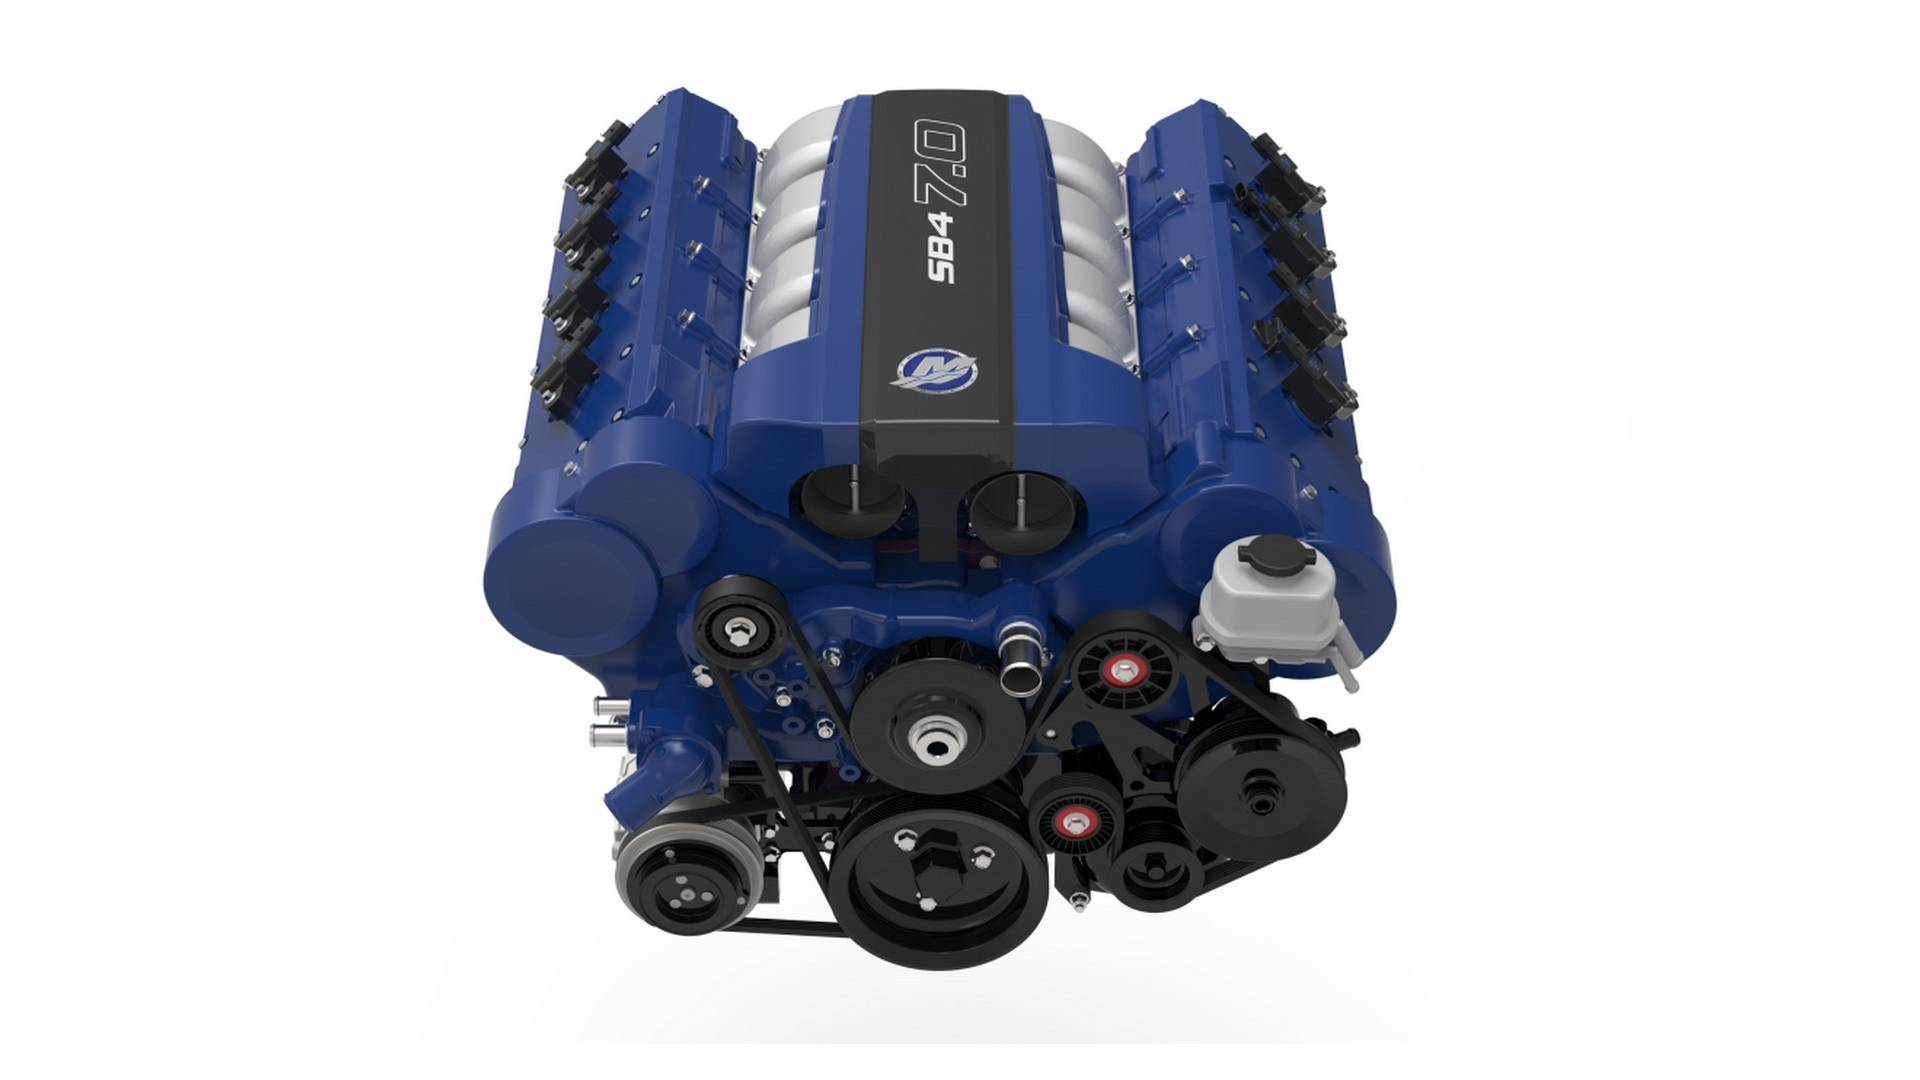 LS7 Crate Engine With 750 Horsepower Is Here For Anti-Turbo